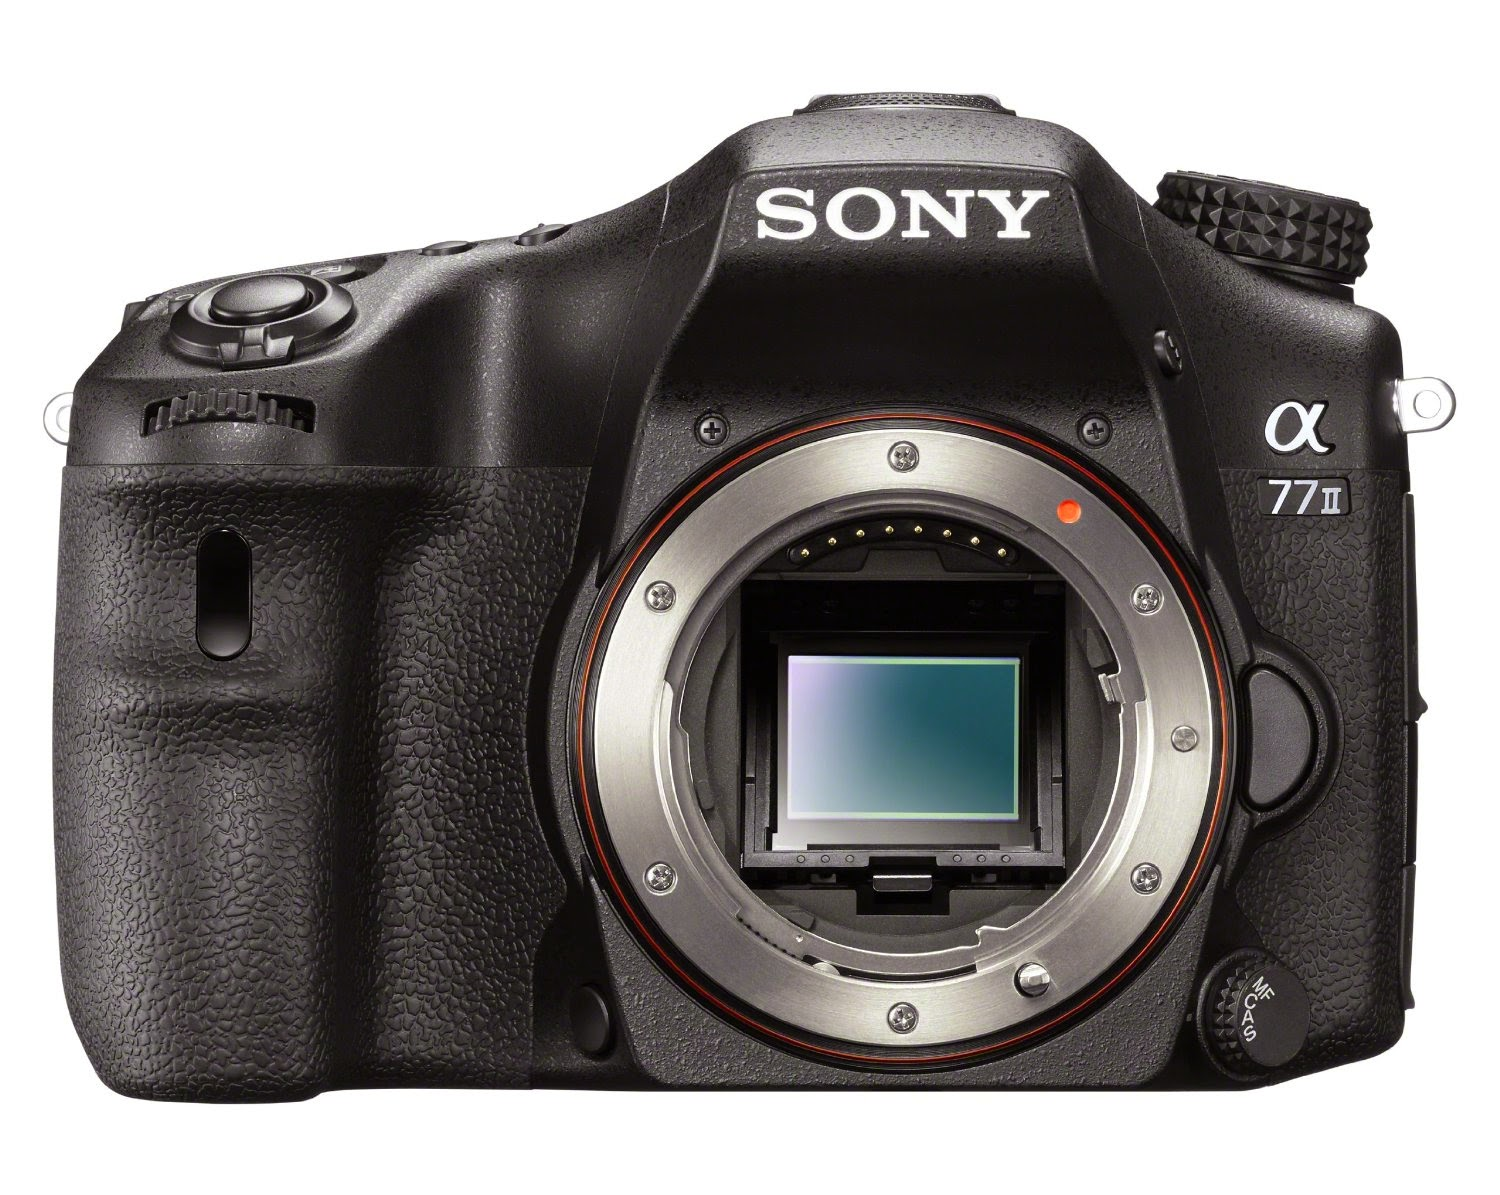 Review: New Sony A77II Digital SLR Camera